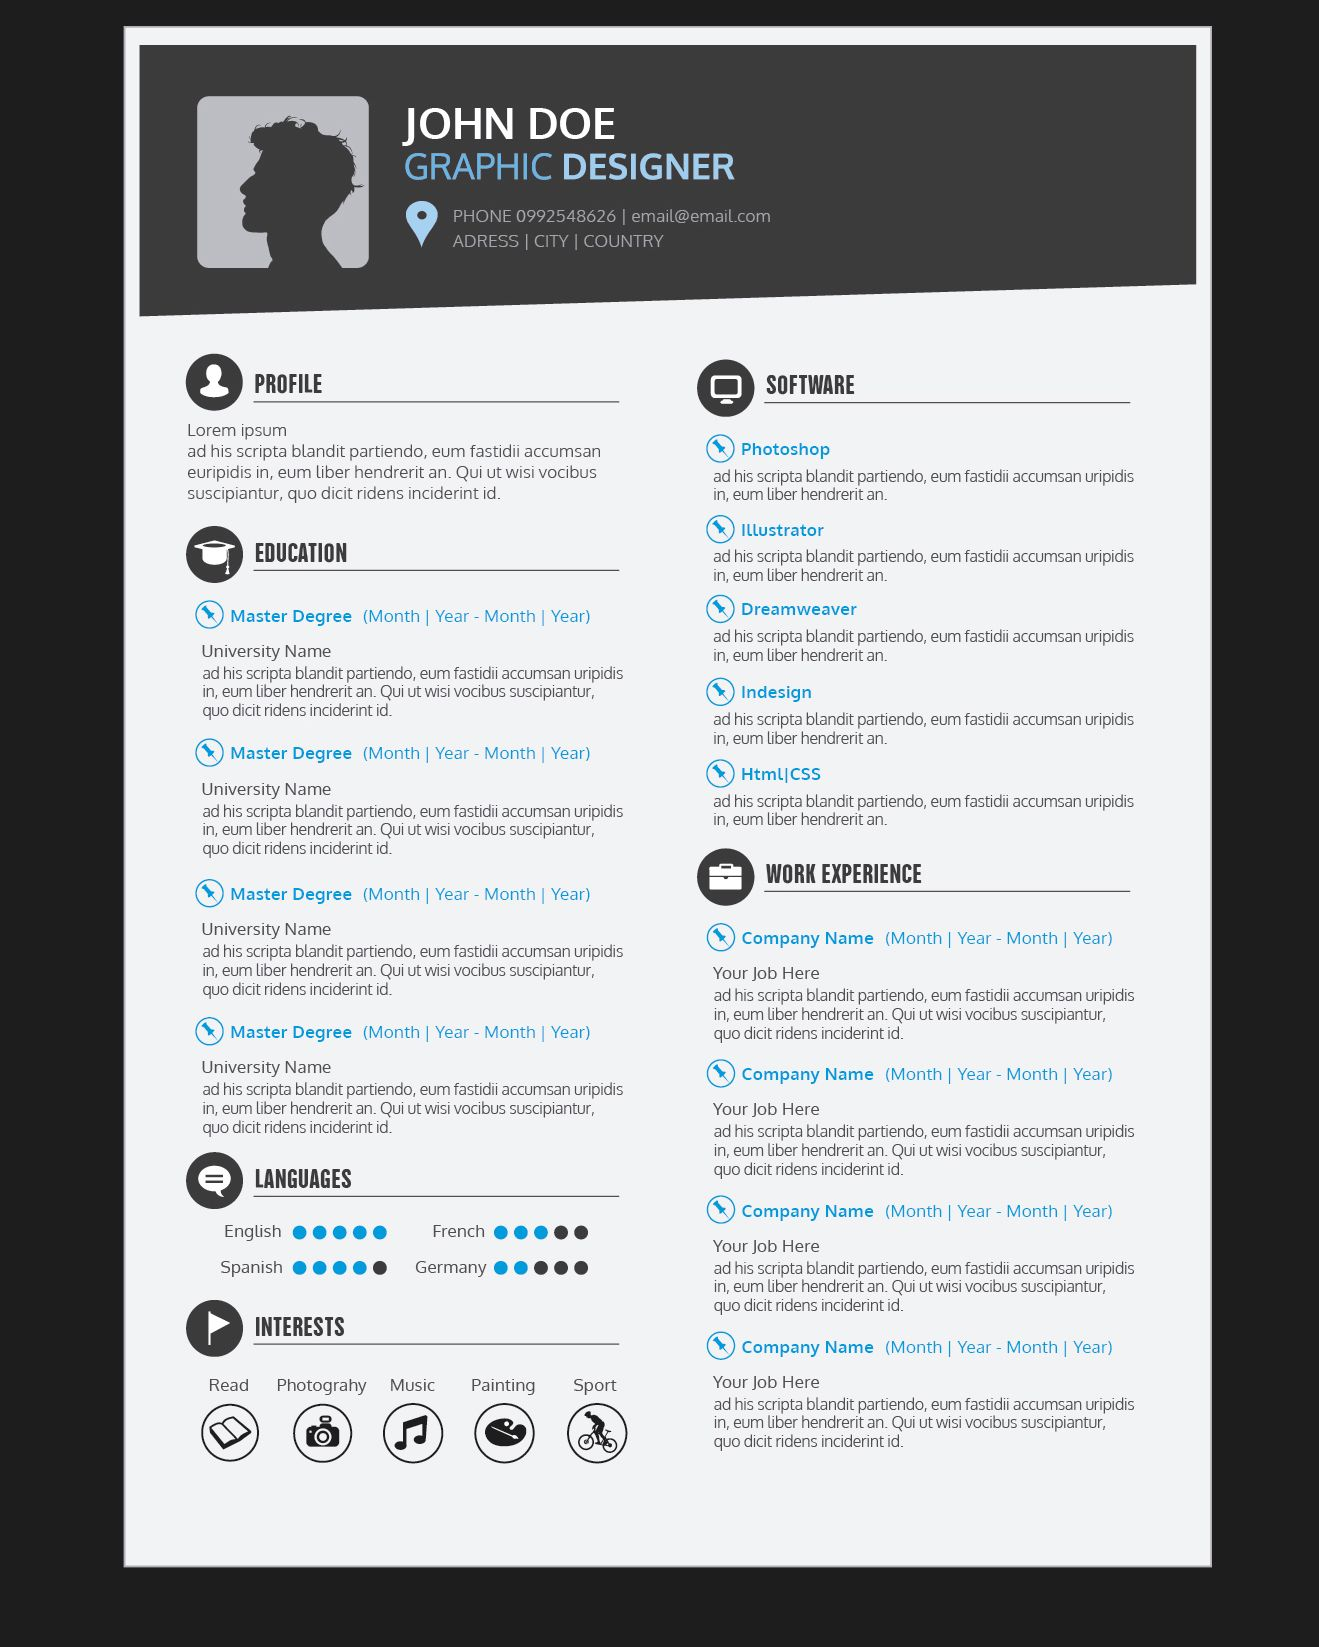 graphic designer resume cv vector graphic designer resume cv large image 1319x1647px